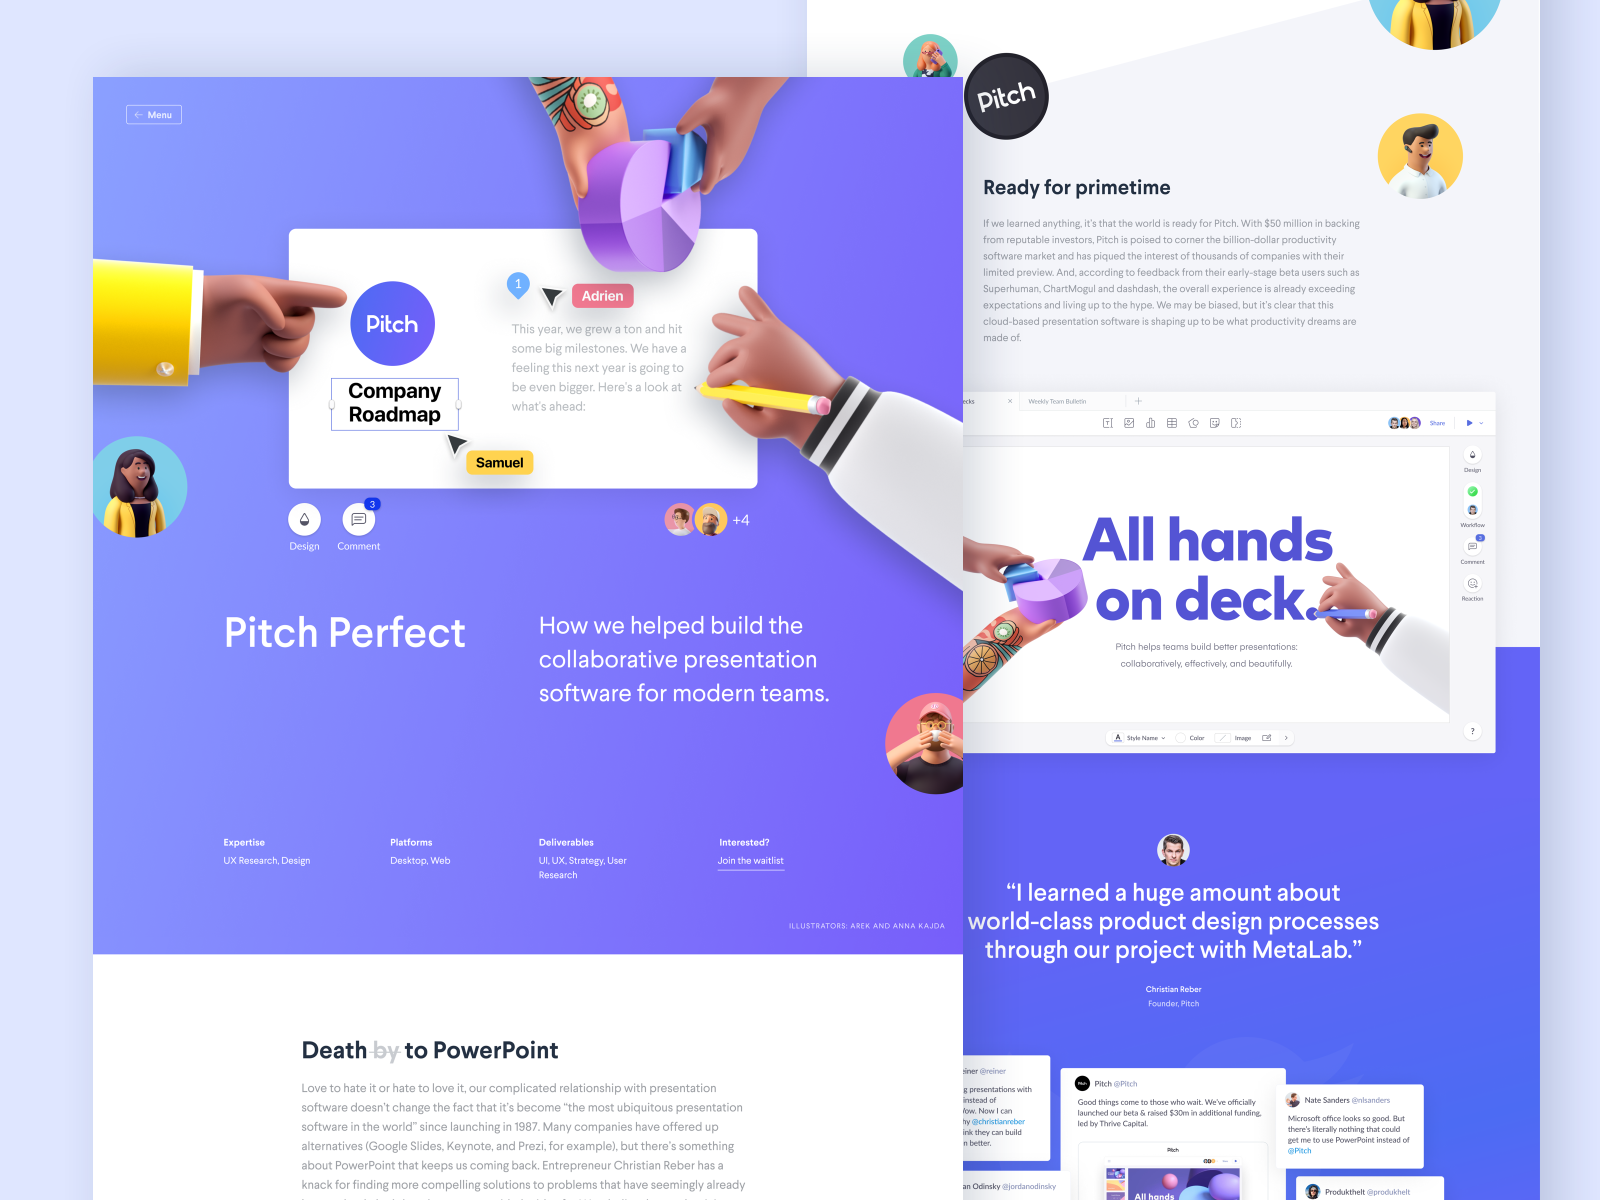 Case study design for Pitch by MetaLab